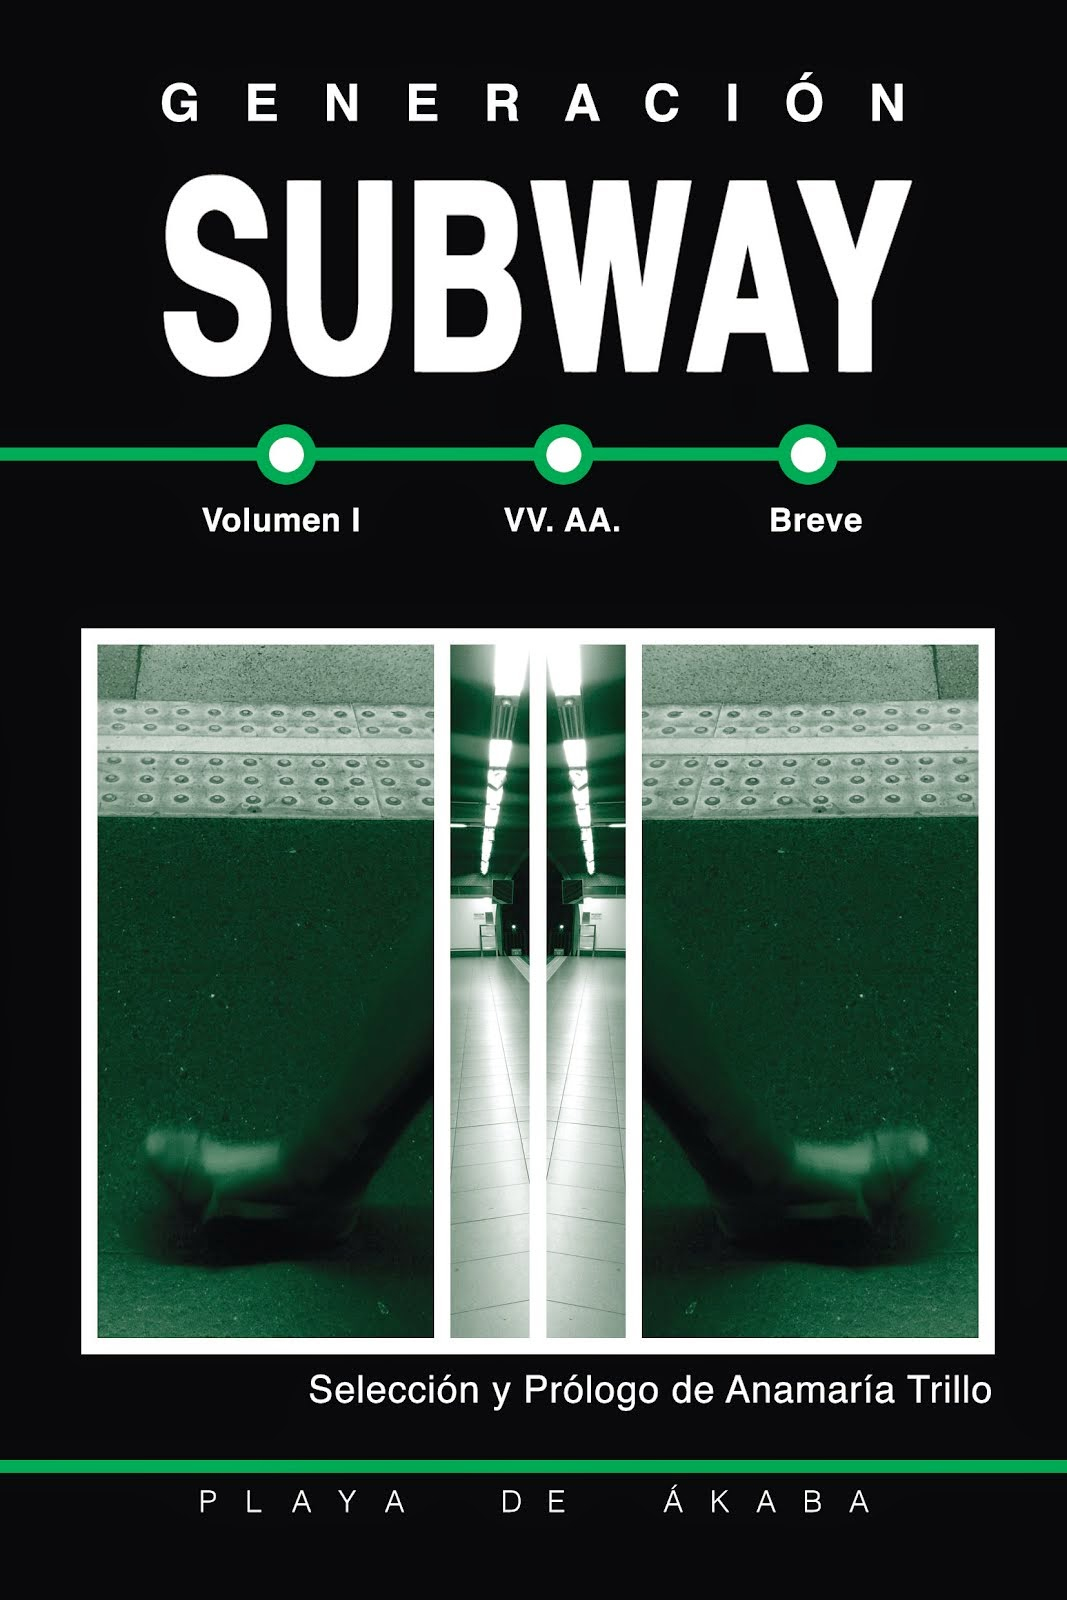 Generación Subway (Relatos)